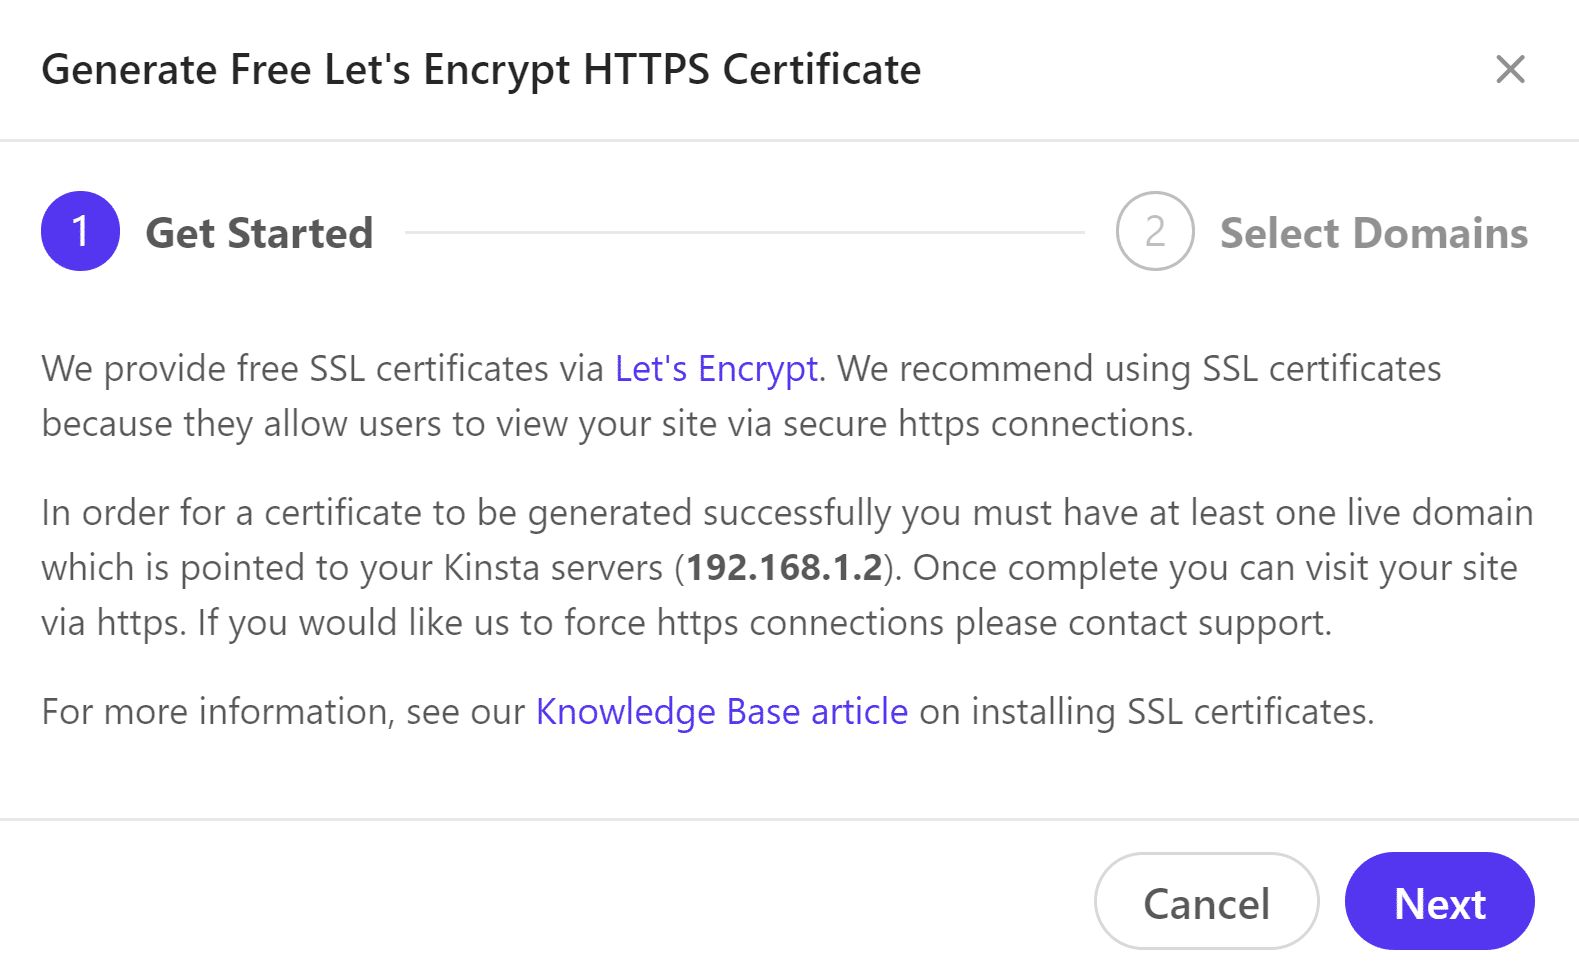 Generate Let's Encrypt HTTPS credentials